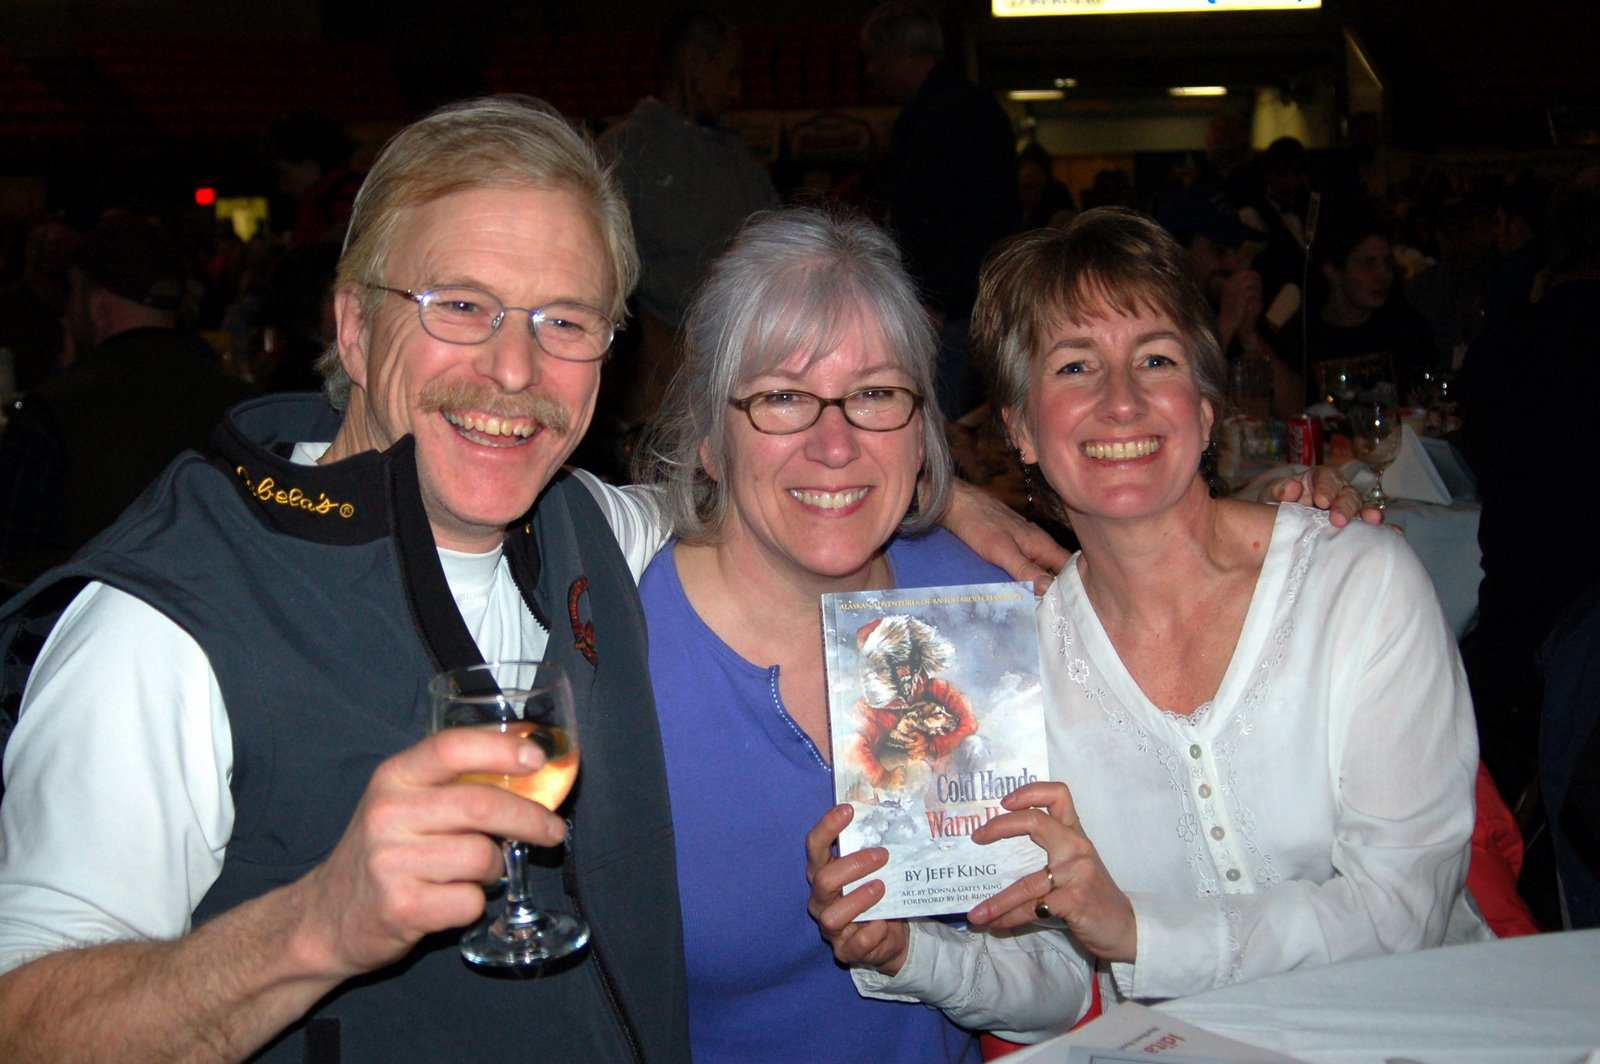 Jeff King and Donna Gates with their editor at the 2008 Musher's Banquet